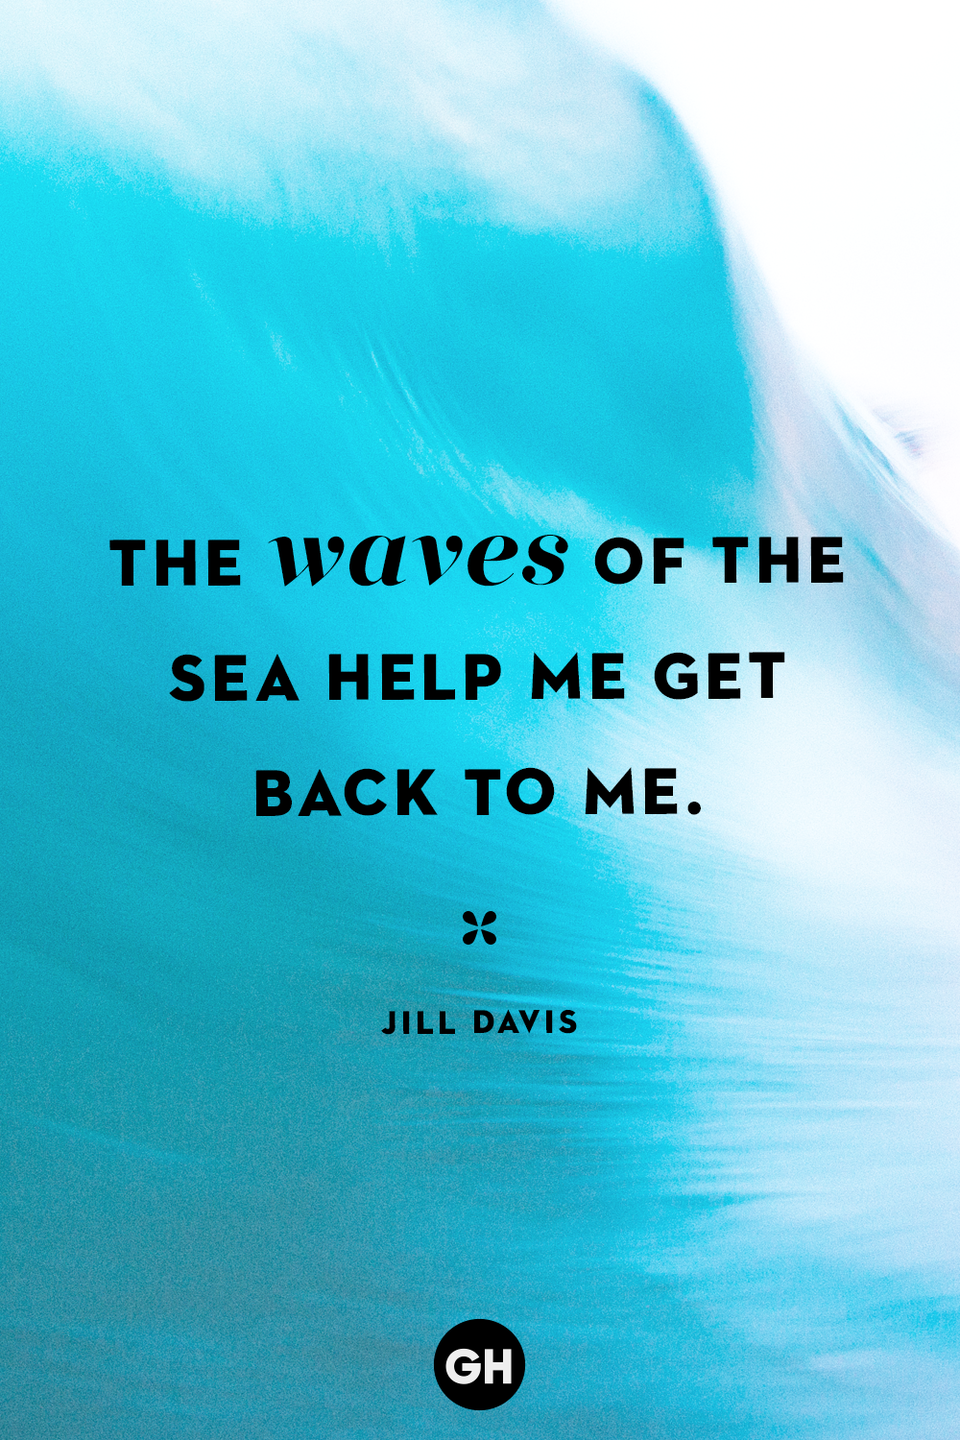 <p>The waves of the sea help me get back to me.</p>